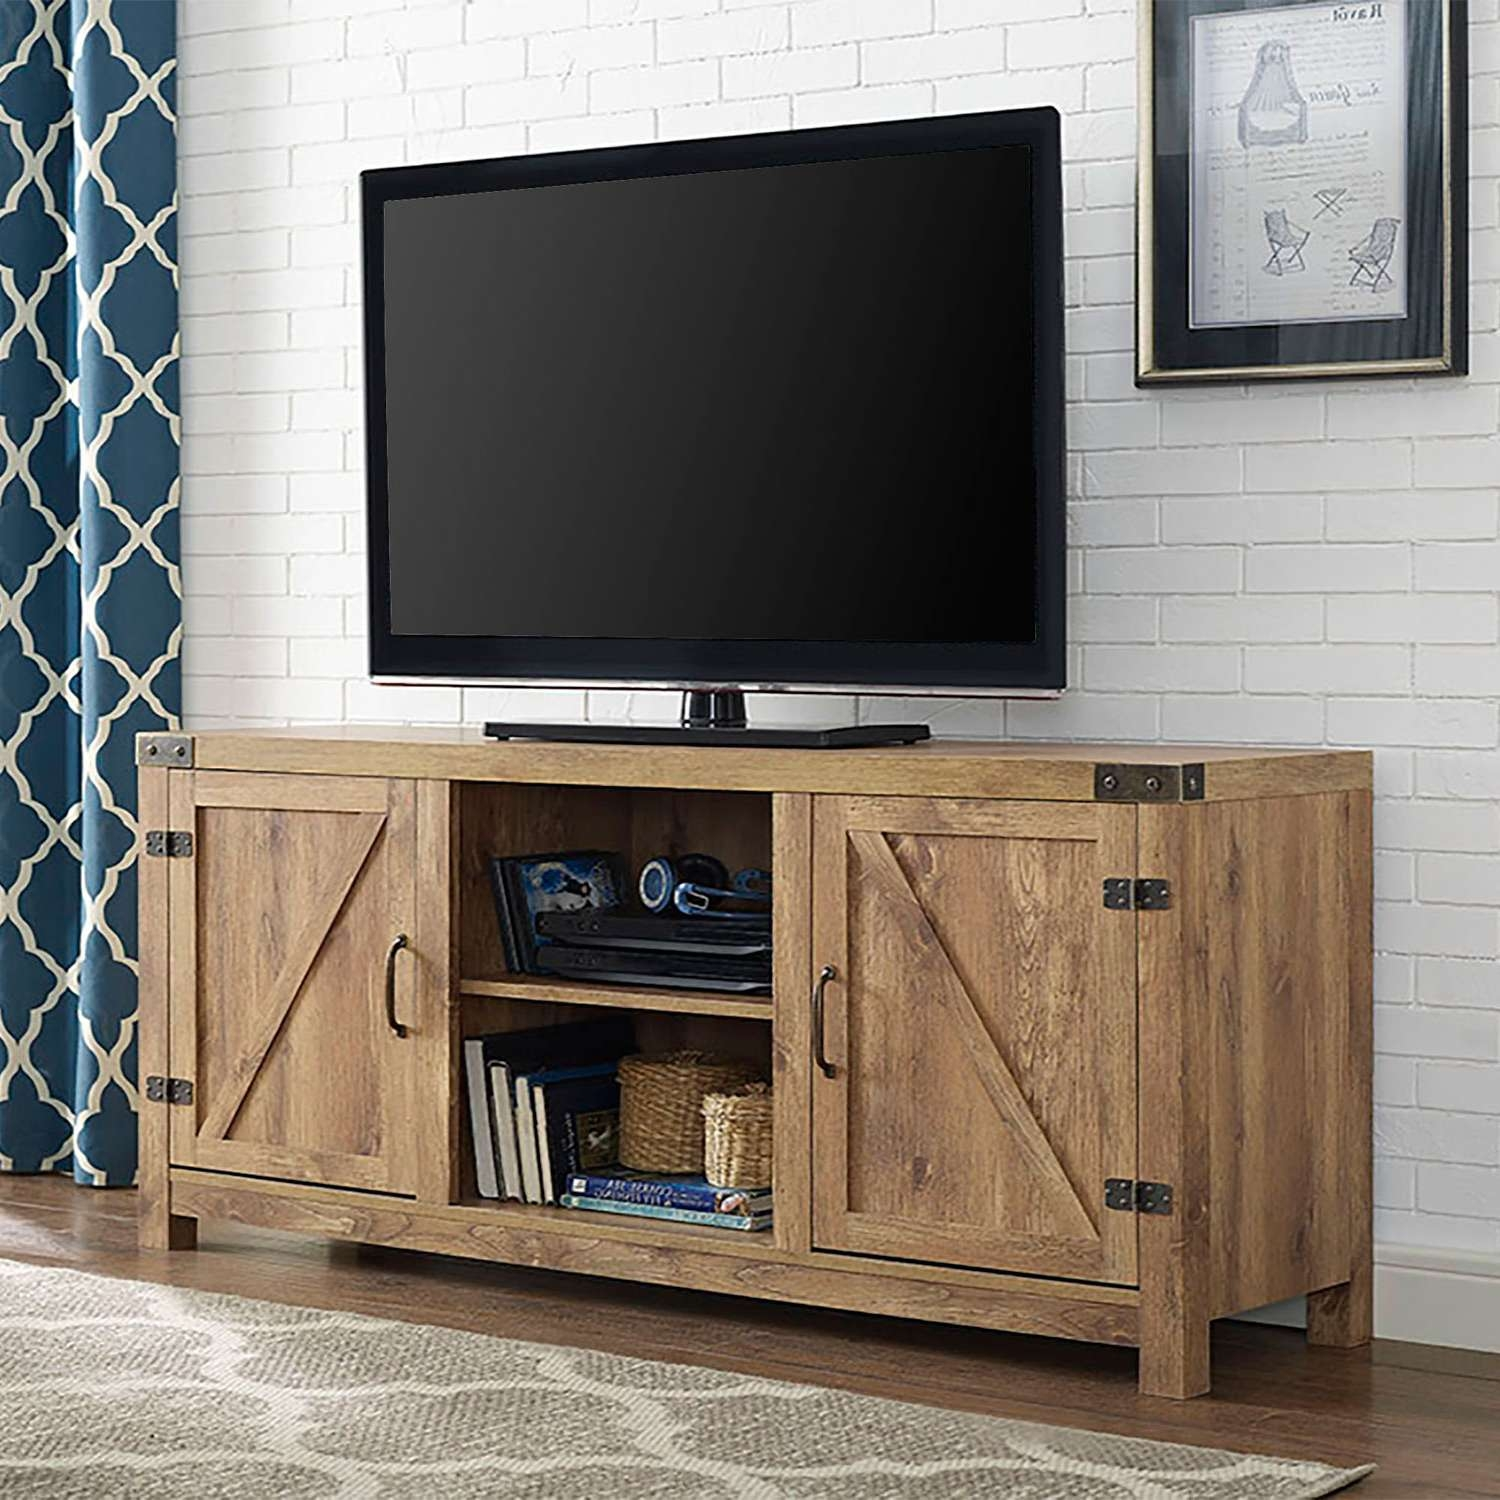 Tv Stands & Cabinets On Sale | Bellacor Within Sleek Tv Stands (View 4 of 15)